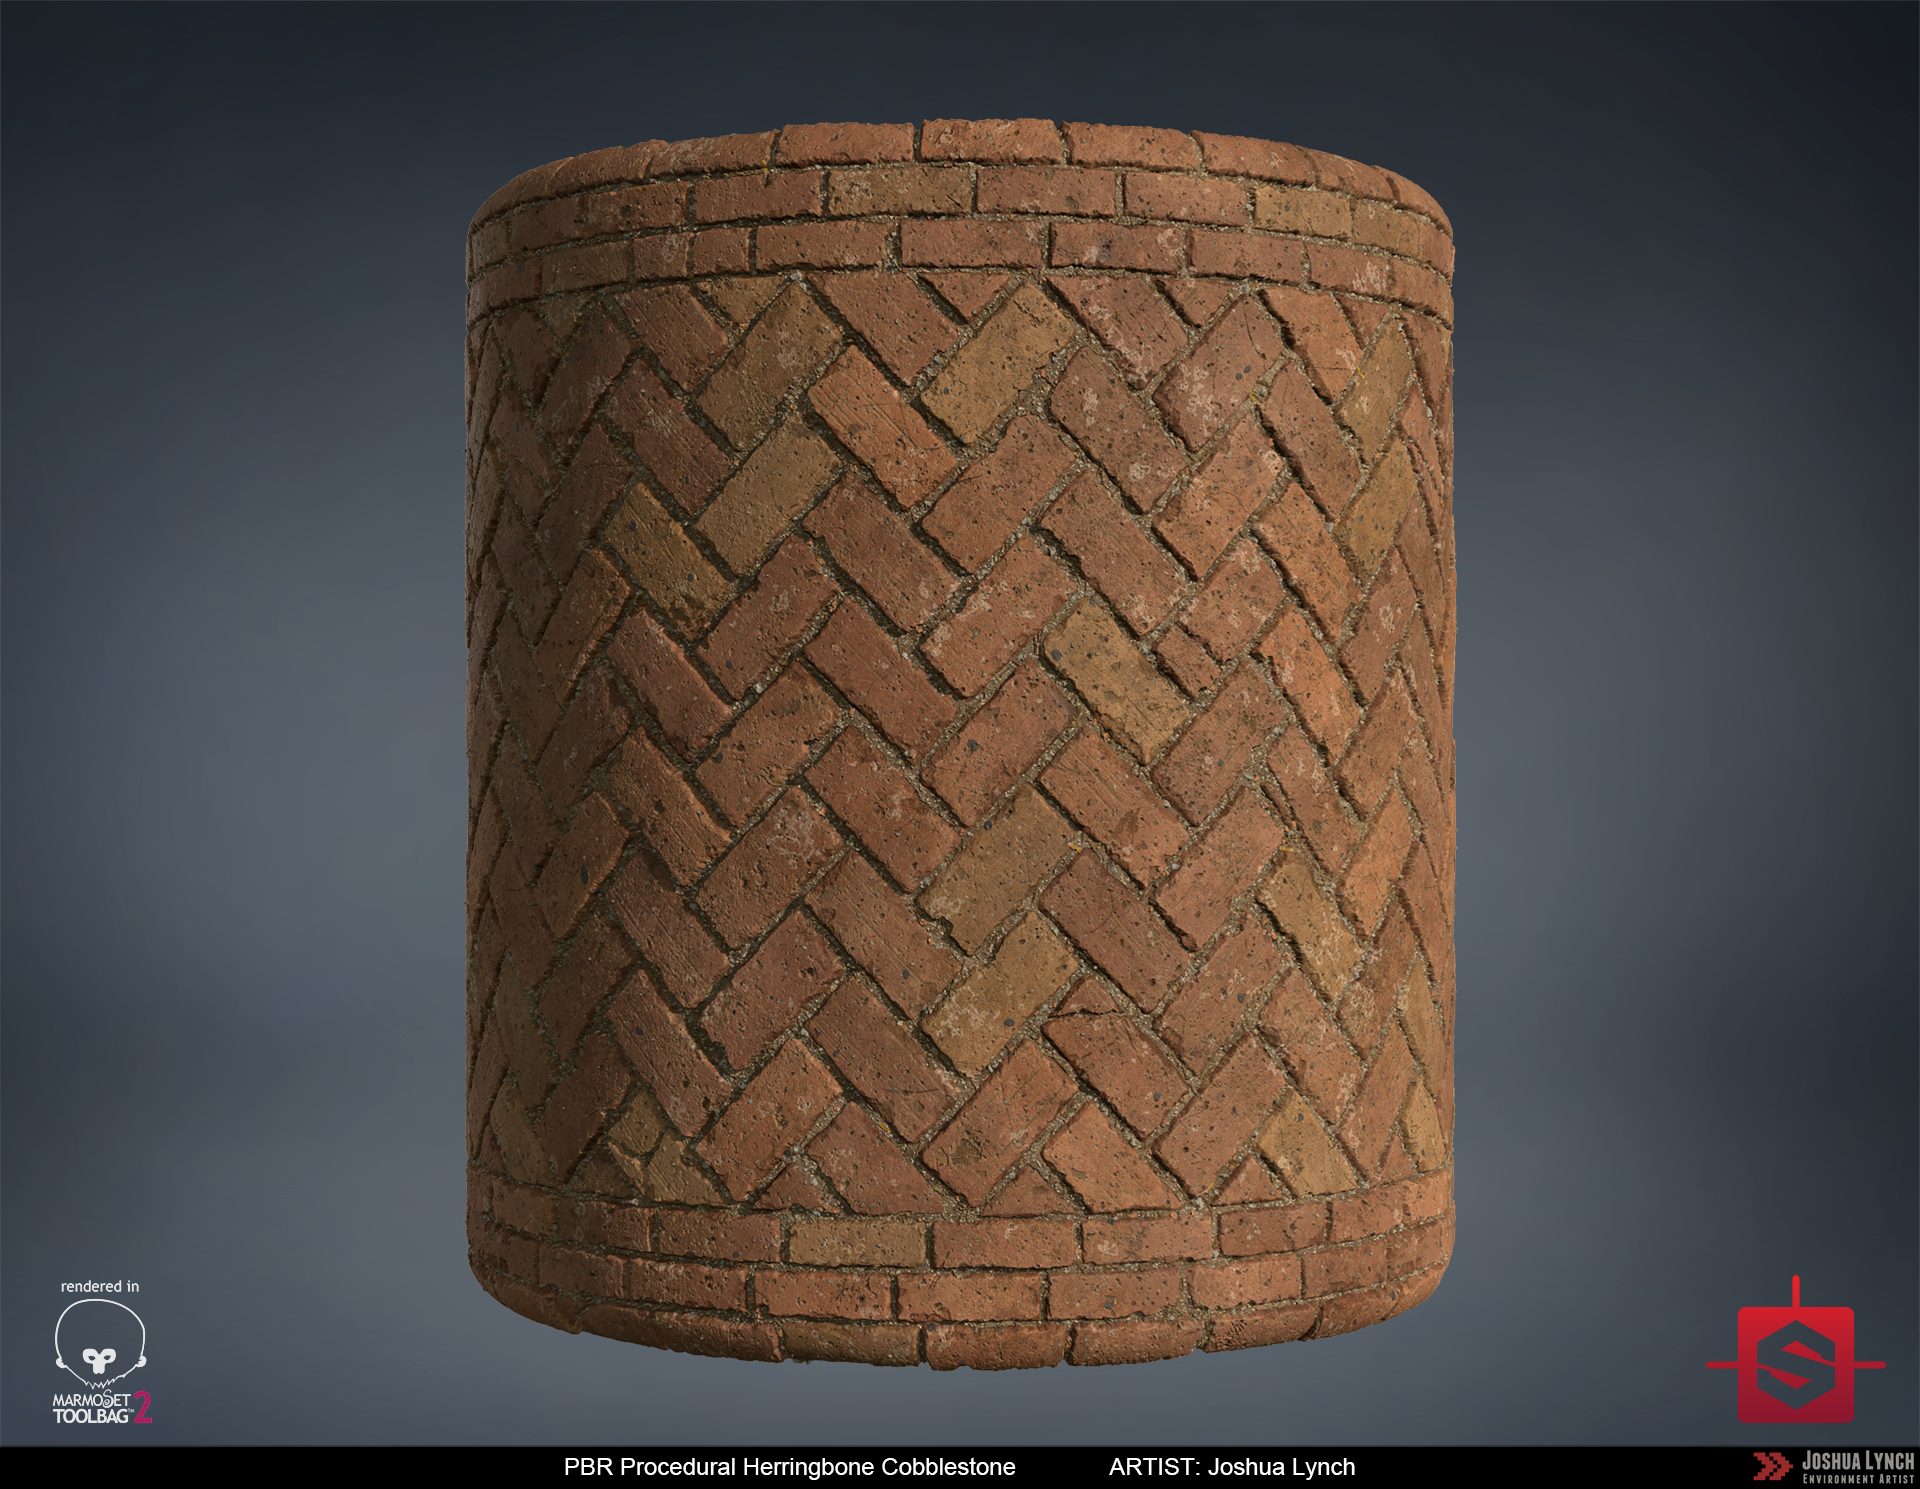 Floor_Cobblestone_Herringbone_Cylinder_Rev_05_Layout_Comp_Josh_Lynch.png